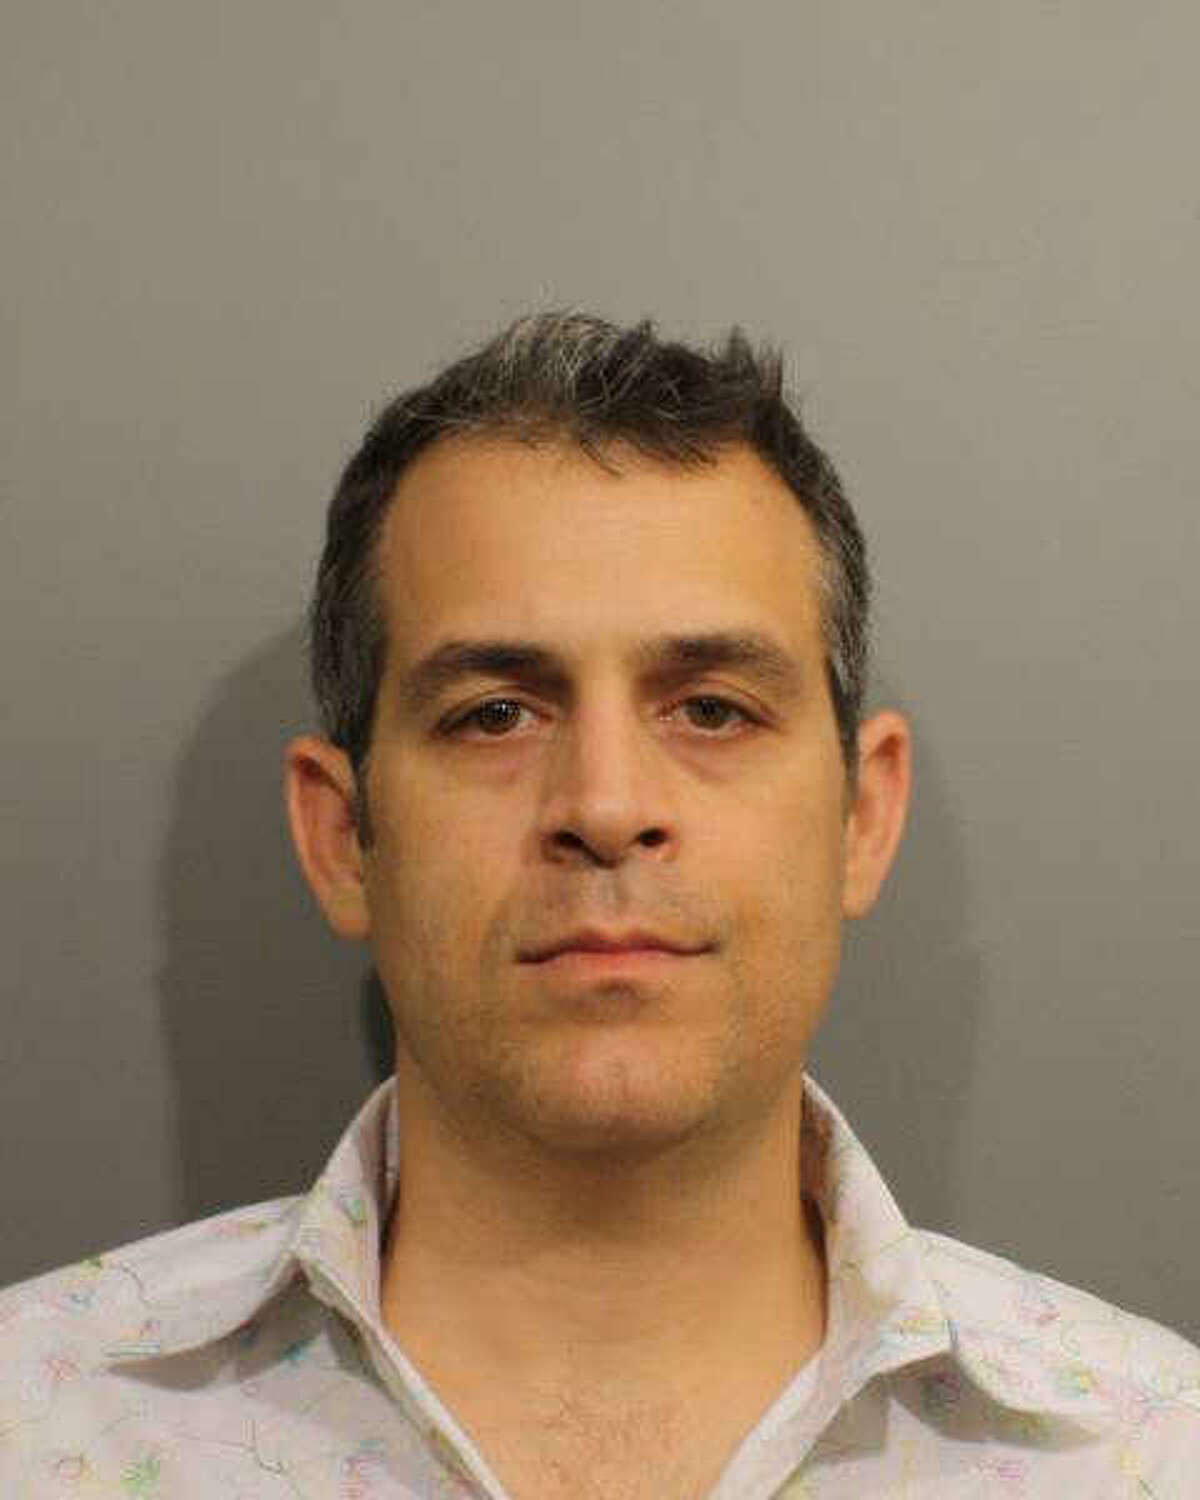 This booking photo provided by the Wilton Police Department shows Matthew J. Criscuolo Jr. Criscuolo is accused of pumping septic waste from his business into a Sugar Hollow Road storm drain.